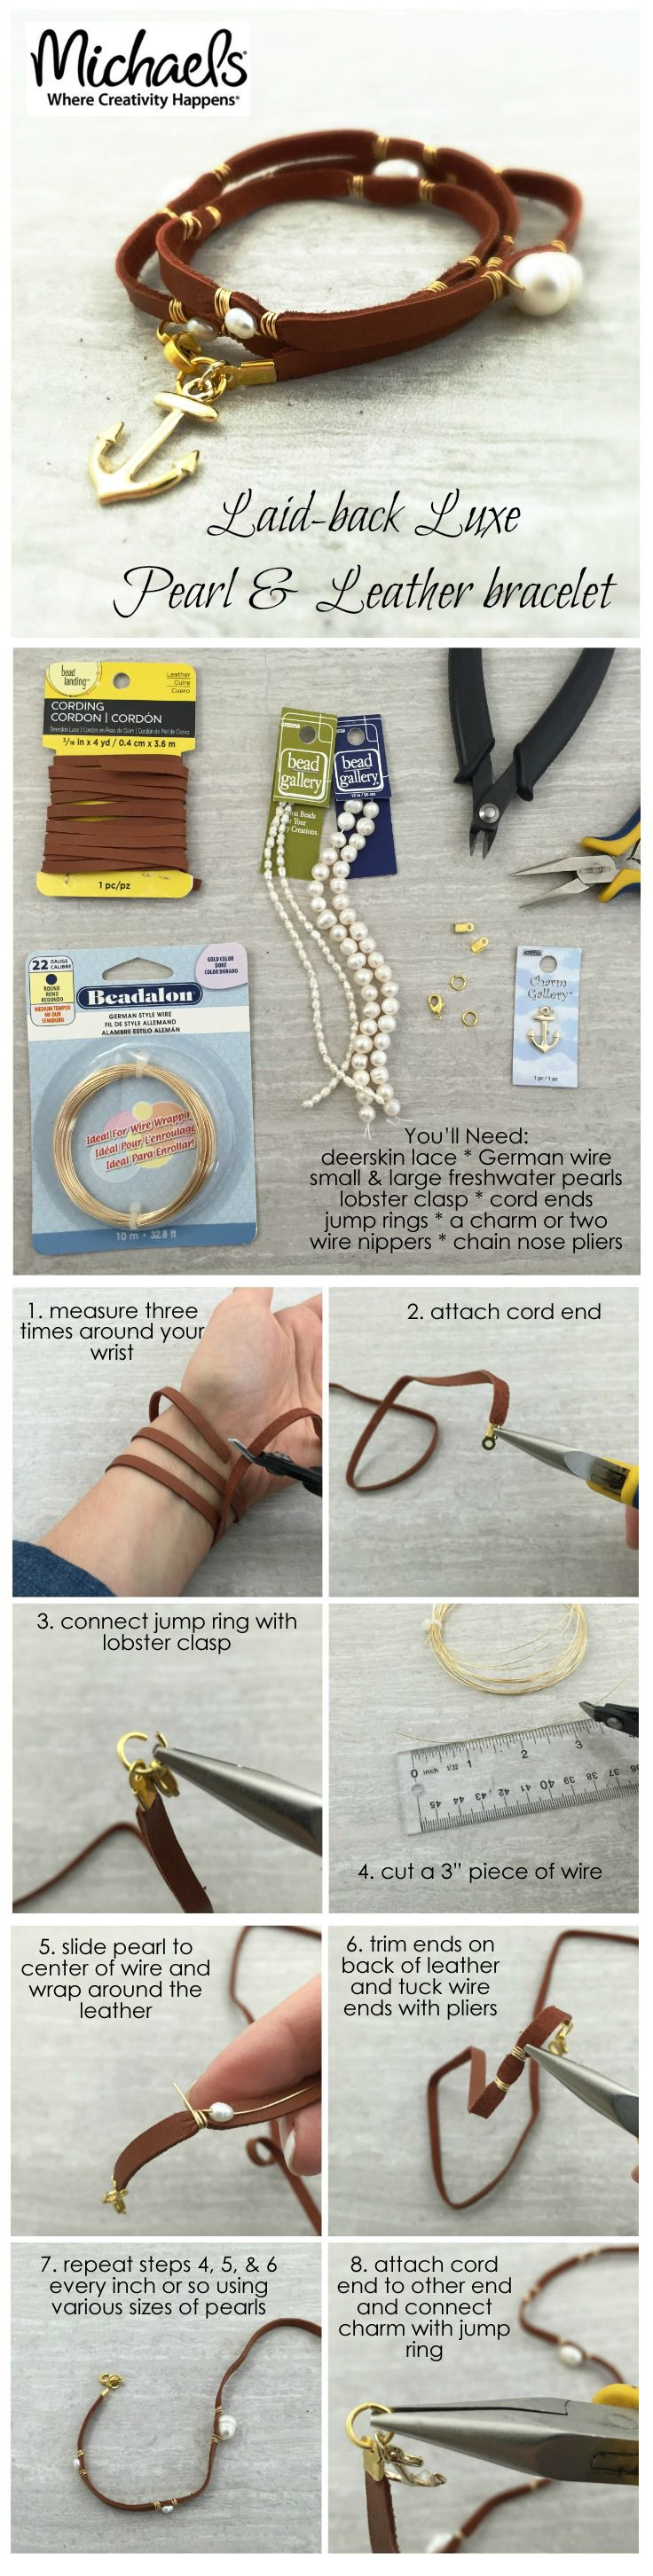 Make your own DIY Leather & Pearl Wrap bracelet with Bead Gallery beads available at @michaelsstores #madewithmichaels